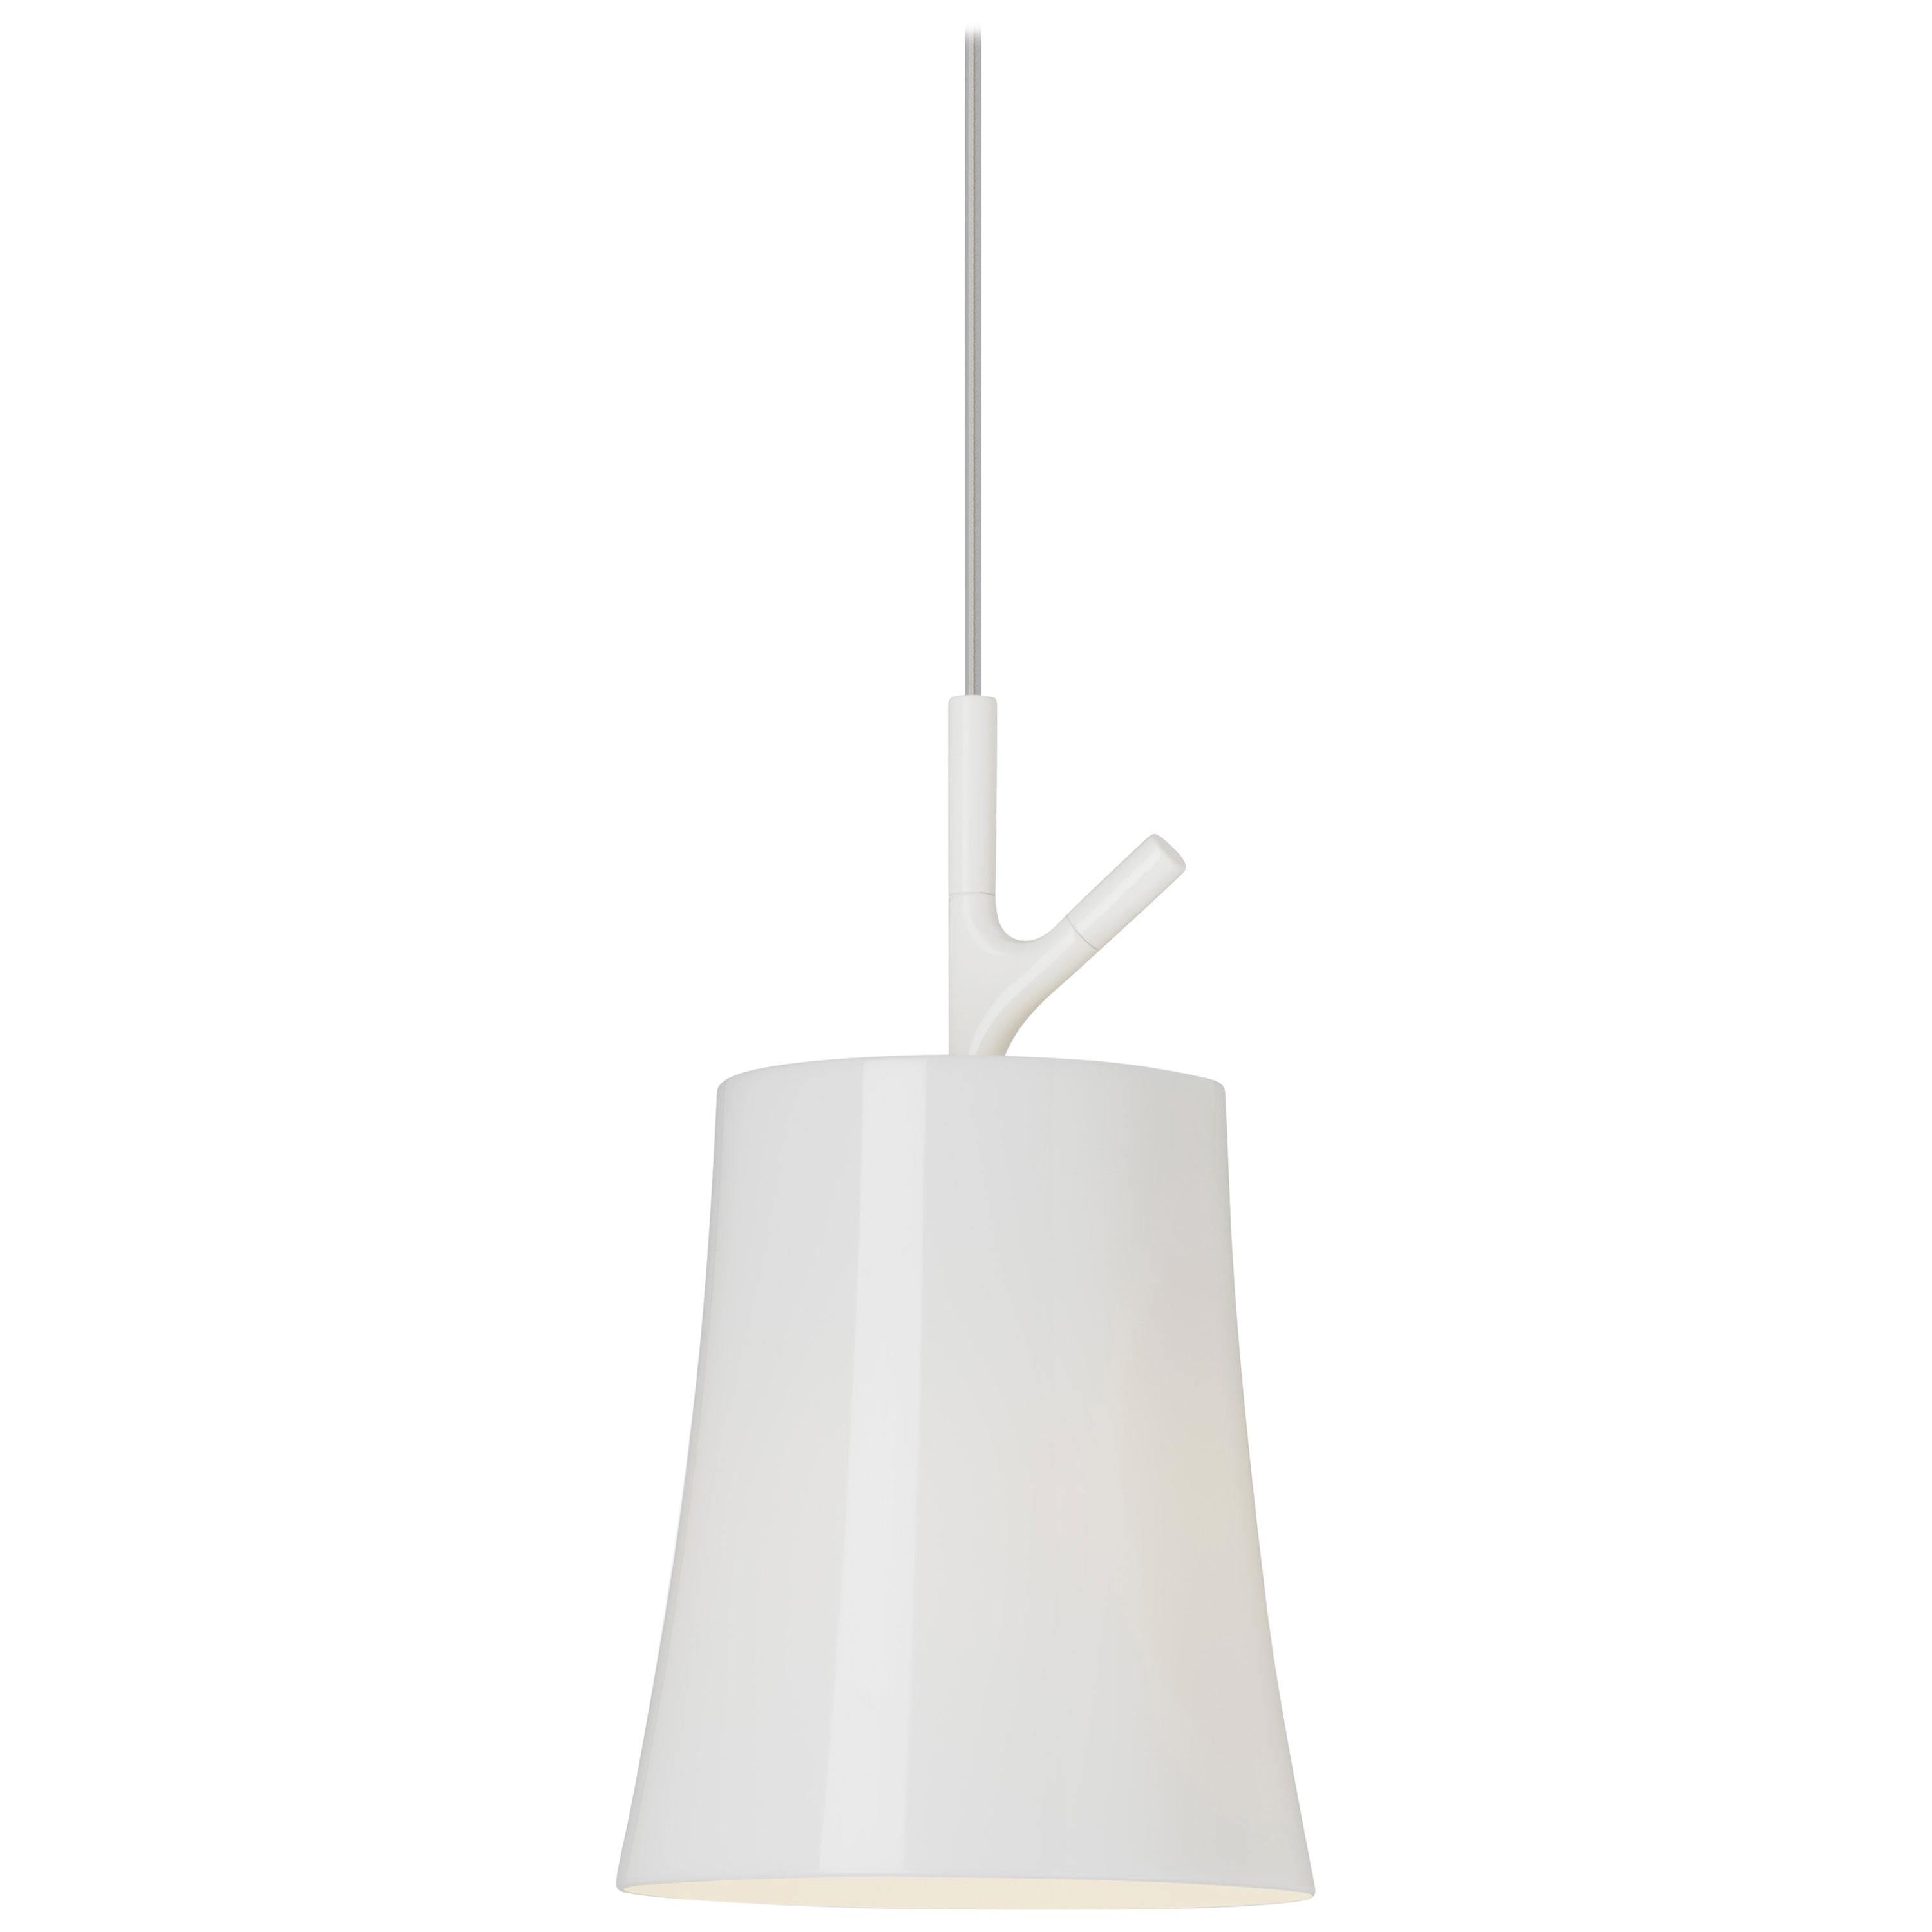 Foscarini Birdie Large Suspension Lamp in White by Ludovica and Roberto Palomba